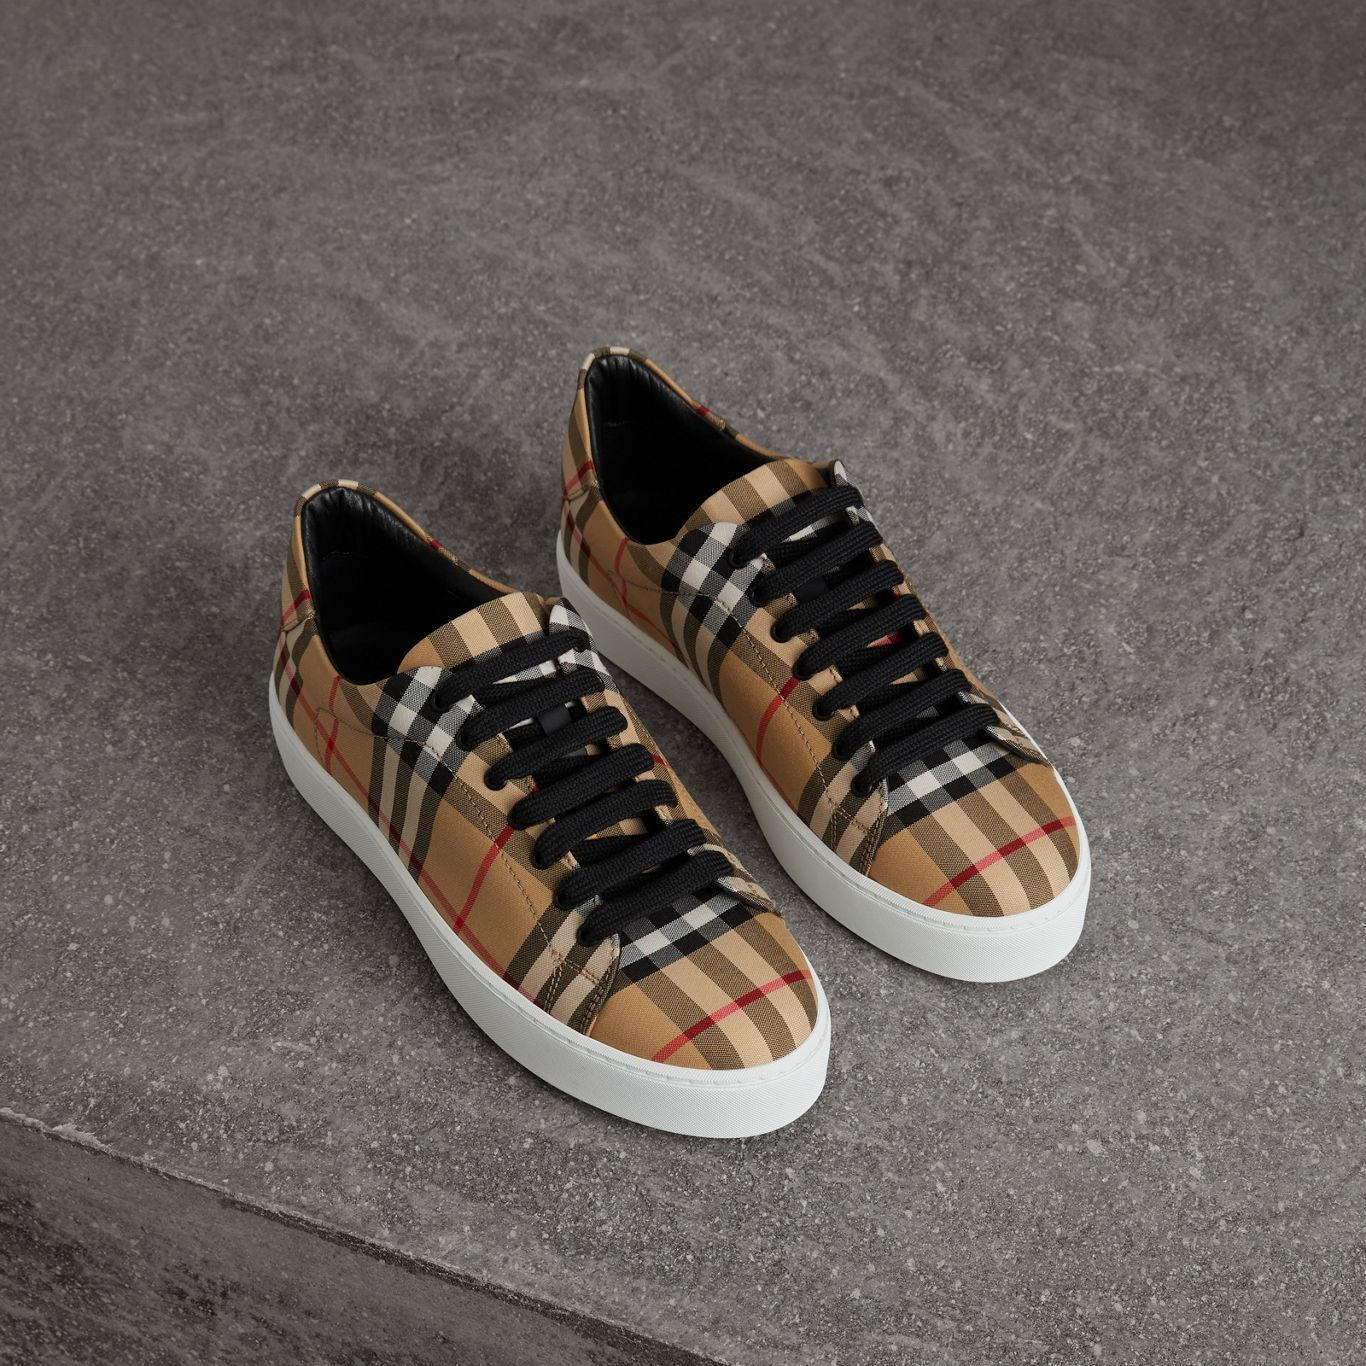 Burberry shoes sneakers